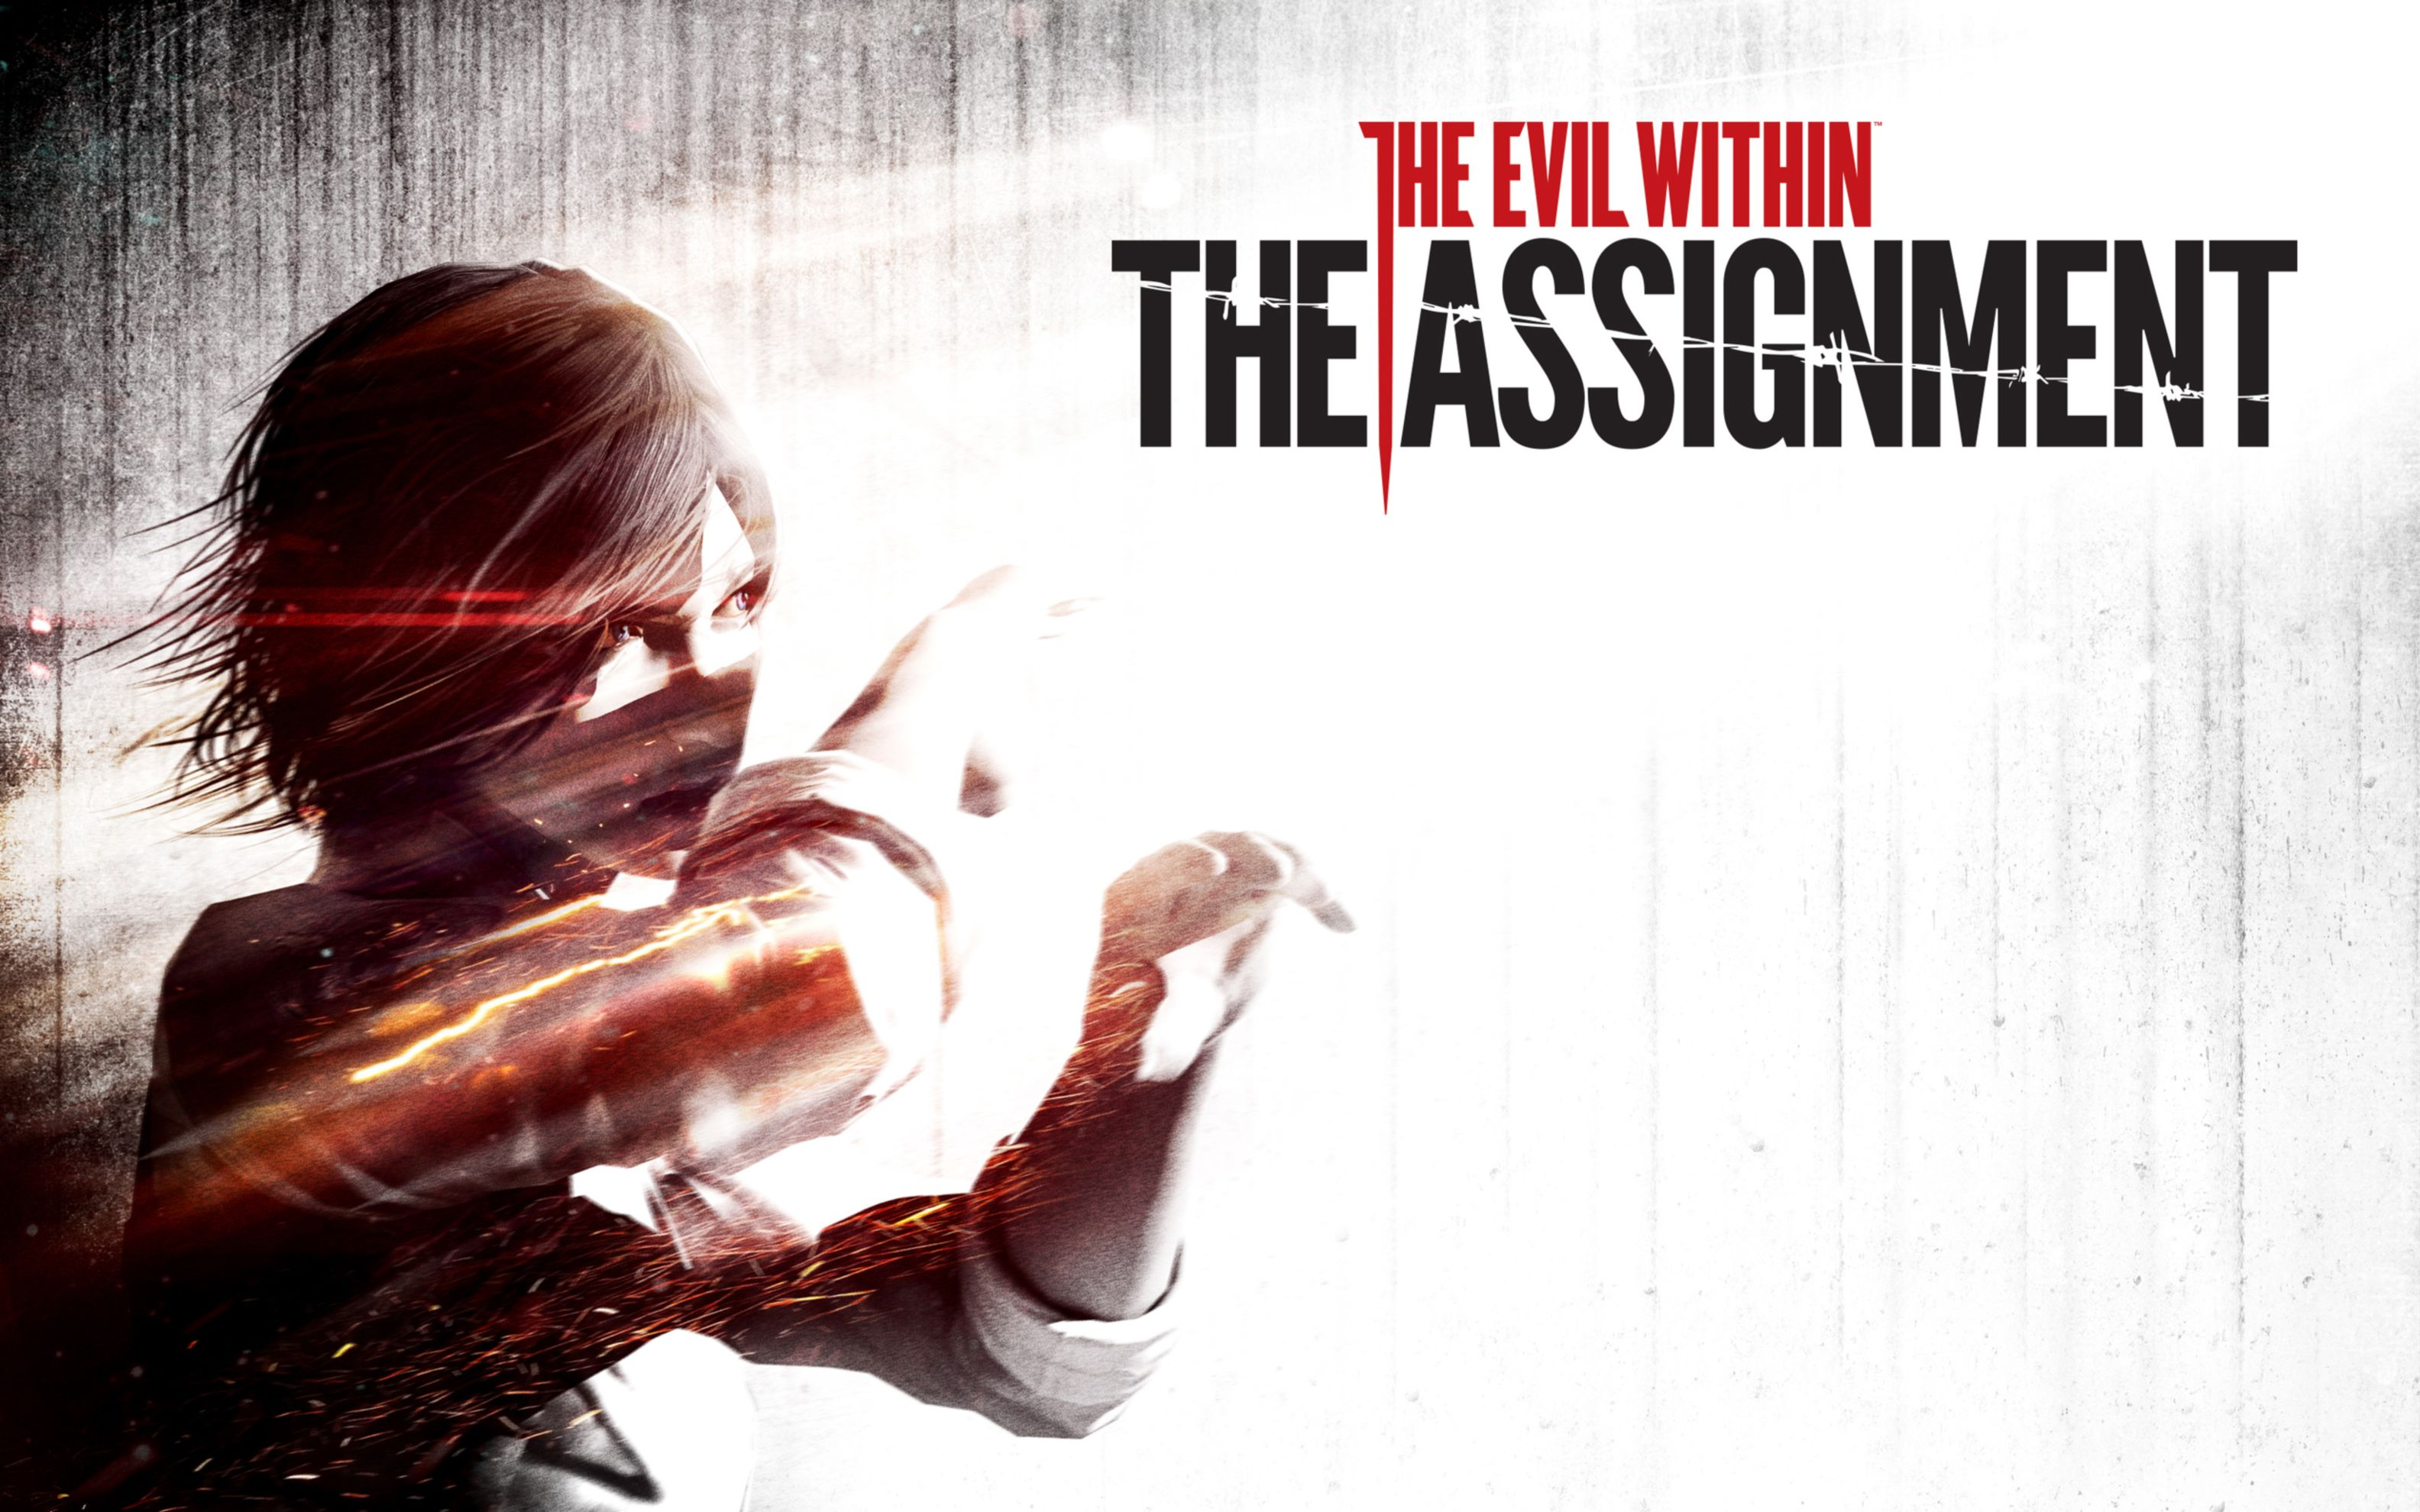 Download free HD The Evil Within The Assignment Wide Wallpaper, image